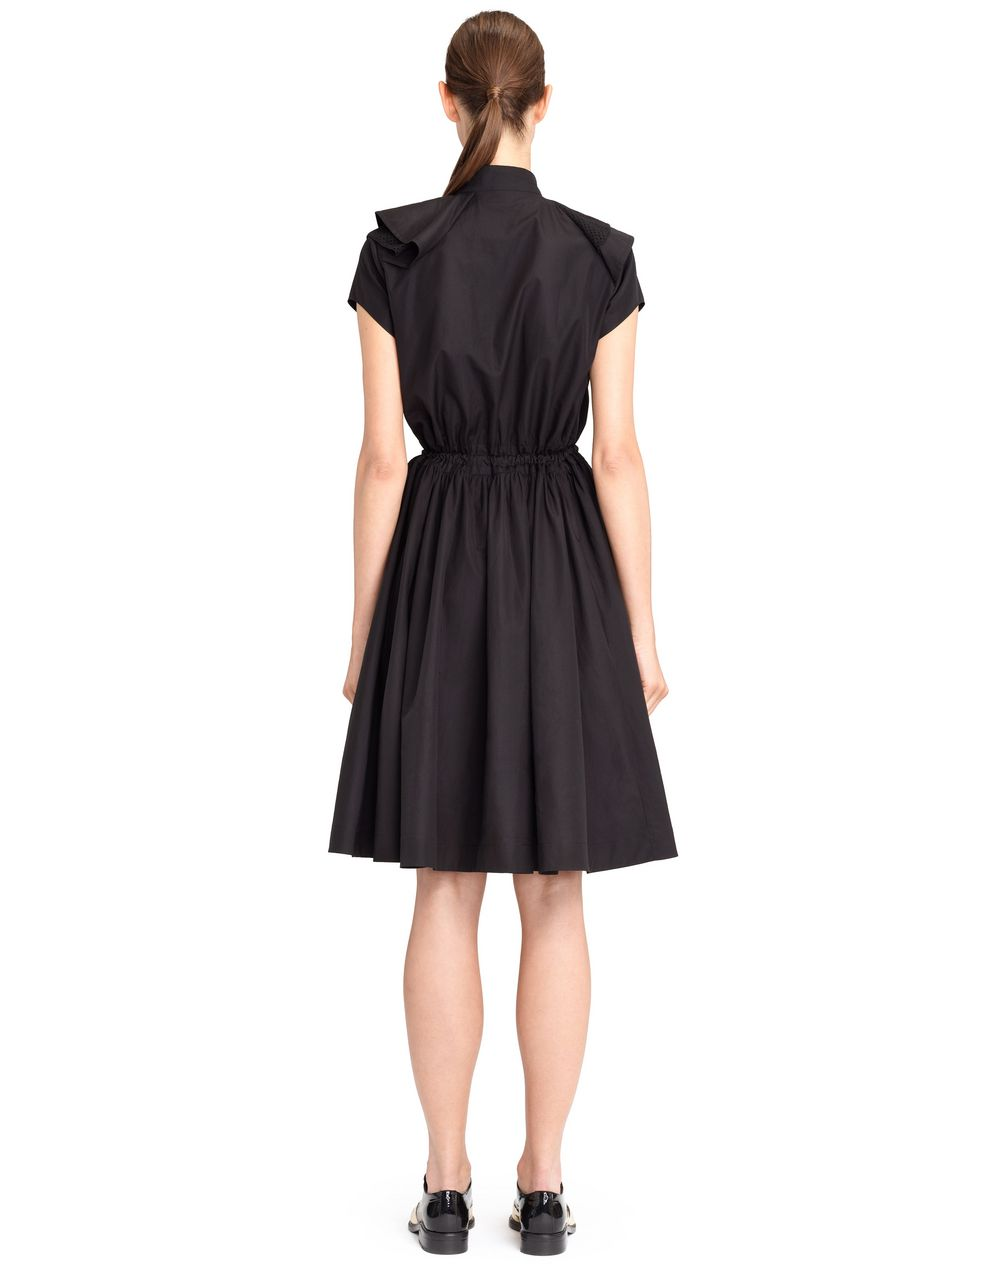 POPLIN DRESS - Lanvin